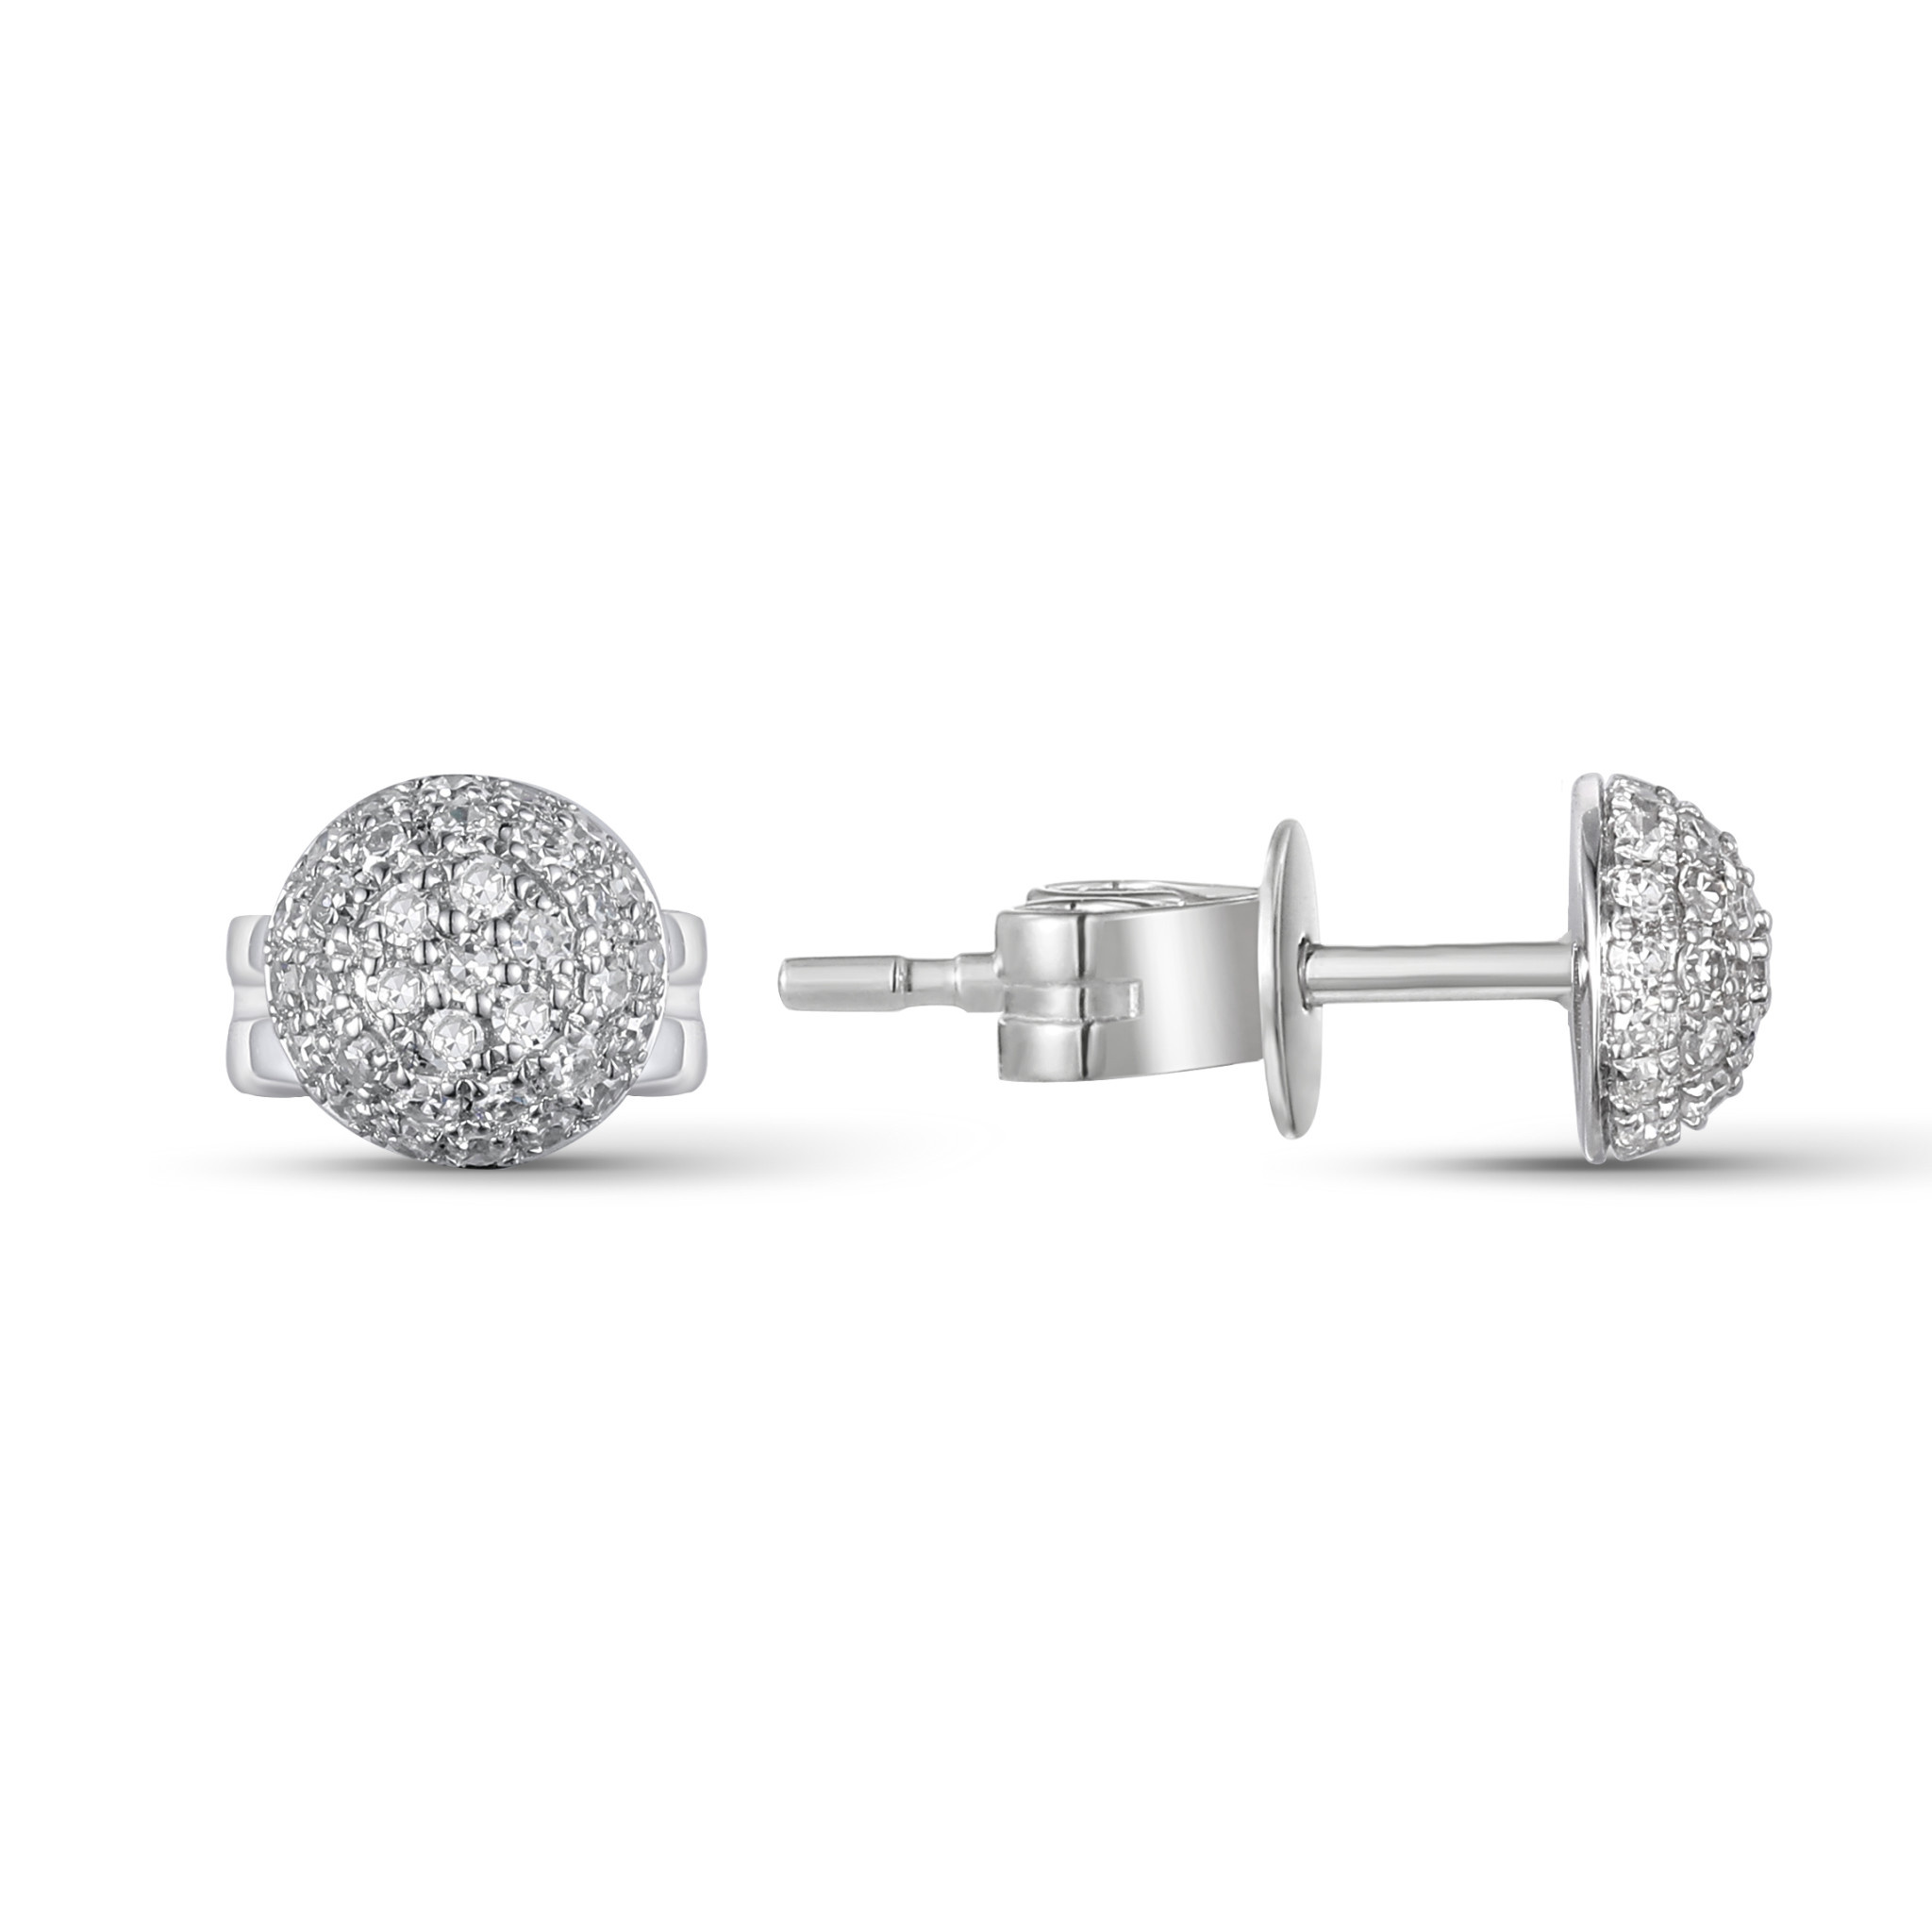 Luvente Small Pave Diamond Dome Stud Earrings